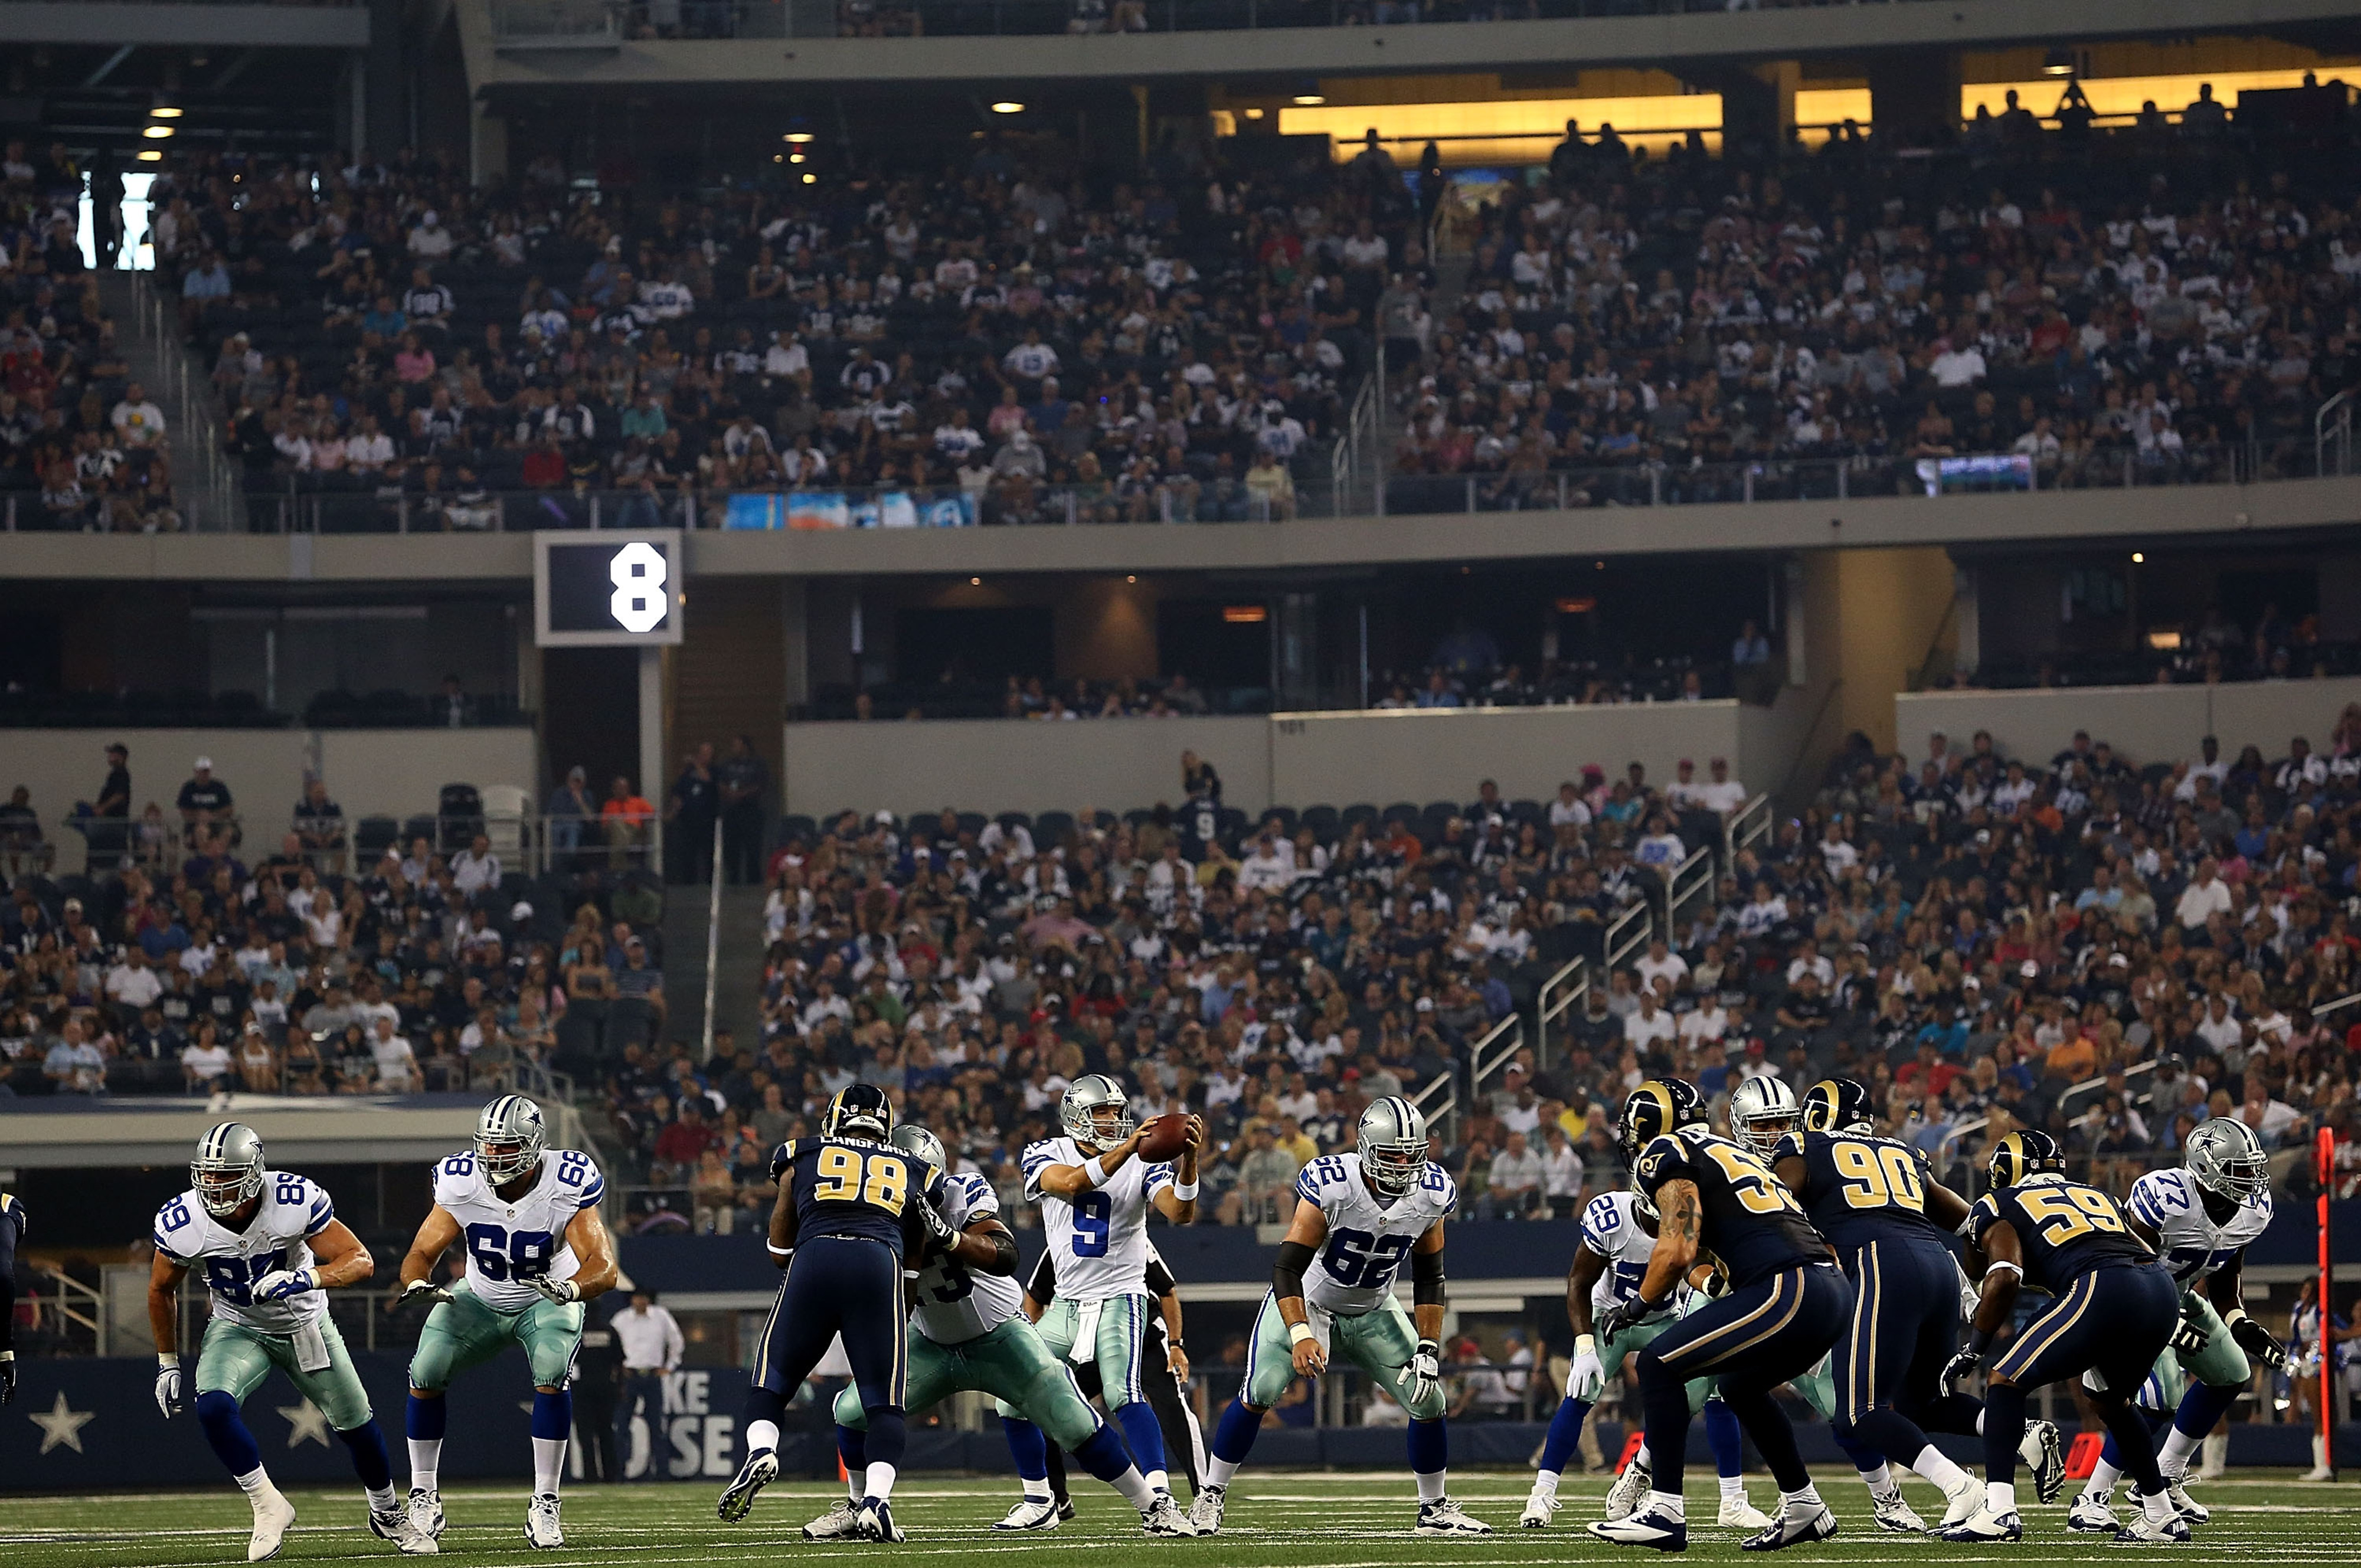 ARLINGTON, TX - AUGUST 25:  Tony Romo #9 of the Dallas Cowboys takes a snap during play against the St. Louis Rams at Cowboys Stadium on August 25, 2012 in Arlington, Texas.  (Photo by Ronald Martinez/Getty Images)